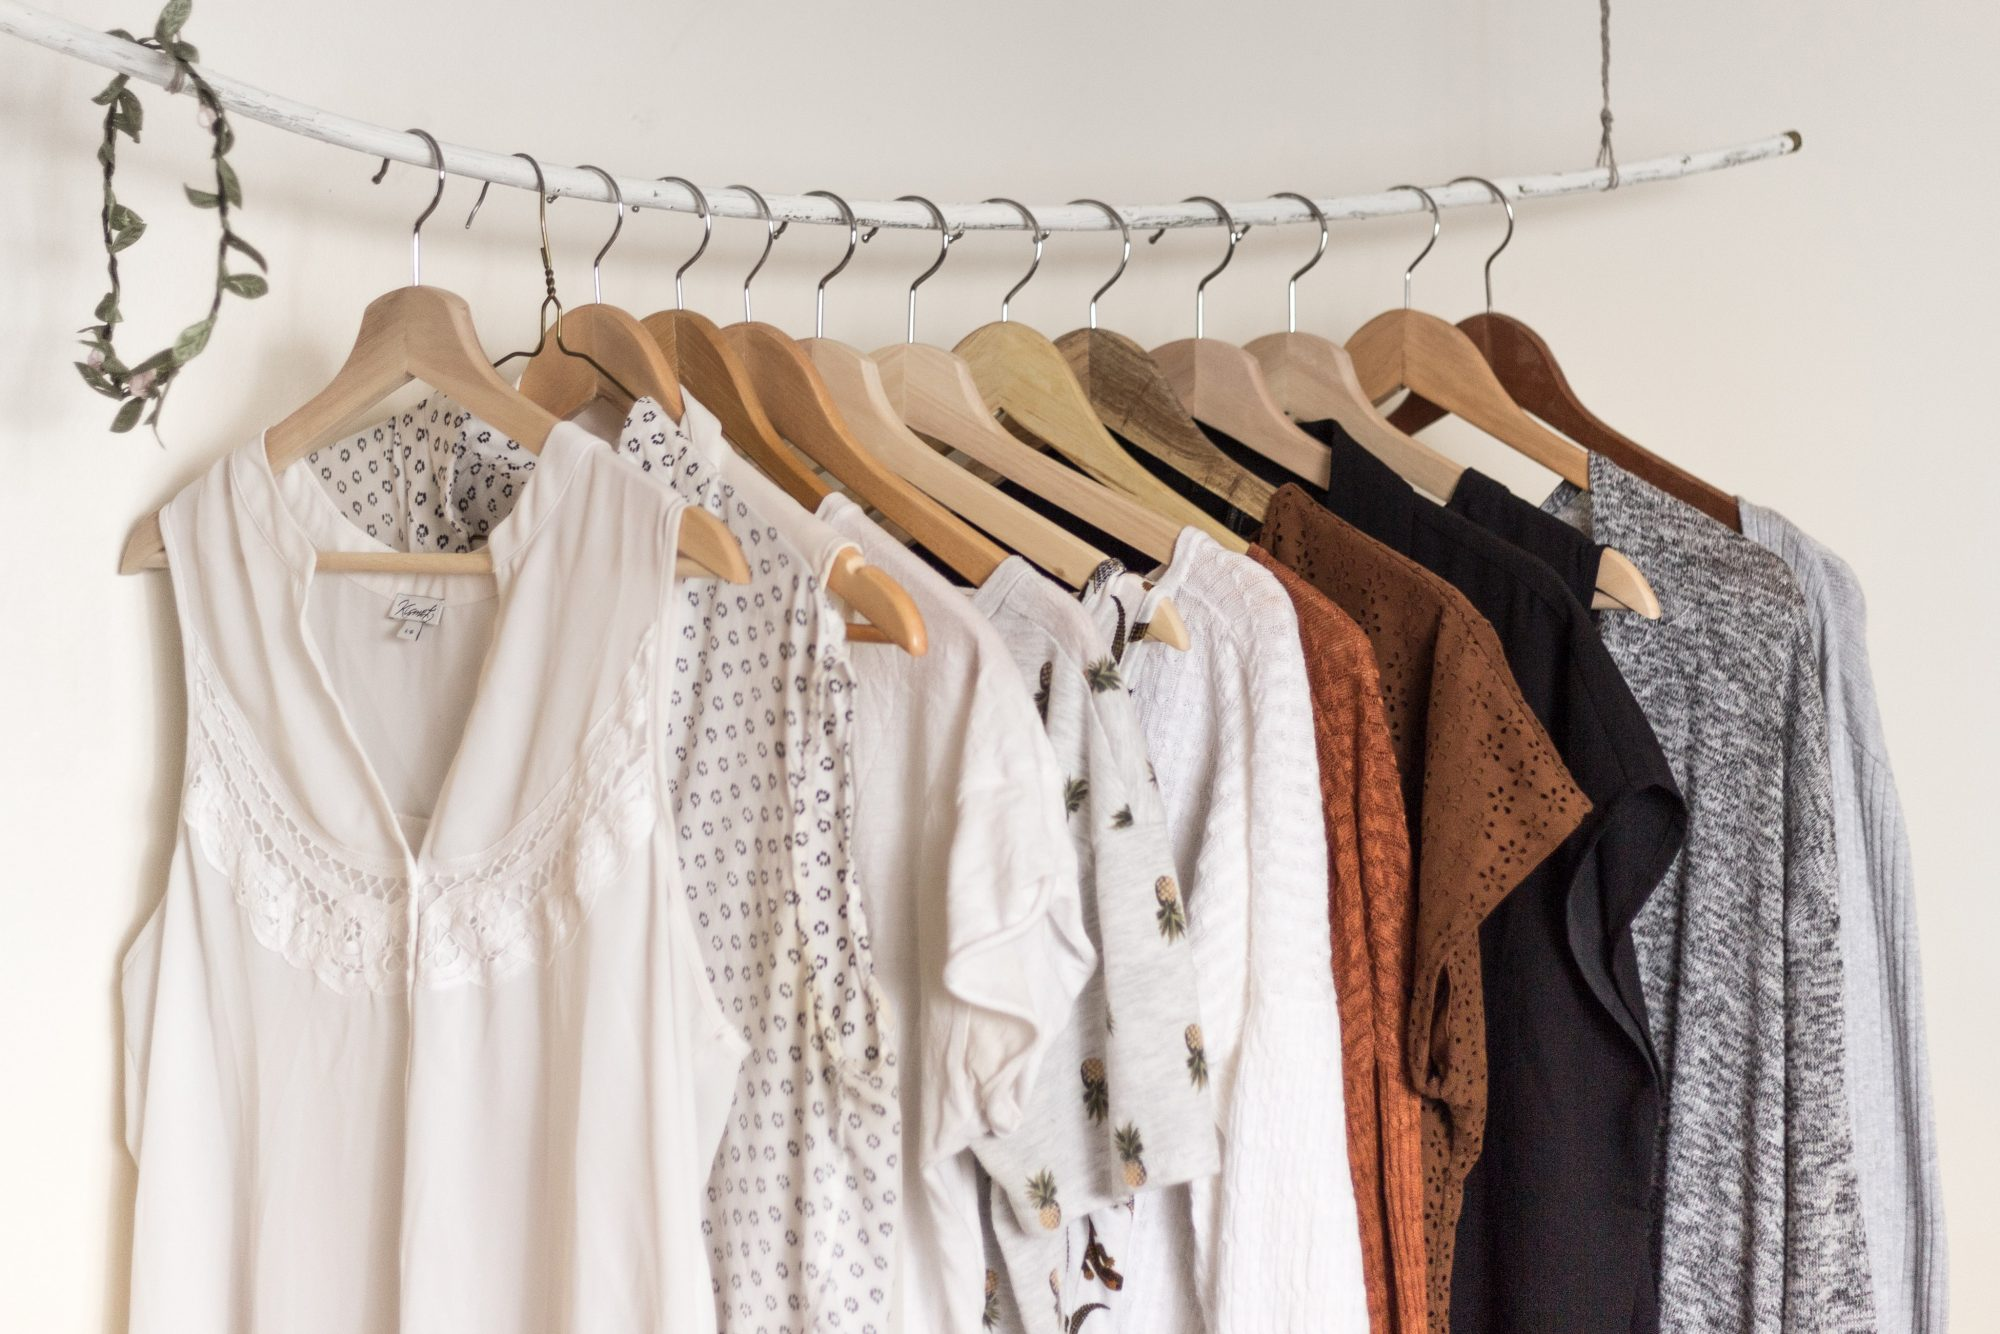 spring cleaning closet confidence plus-size